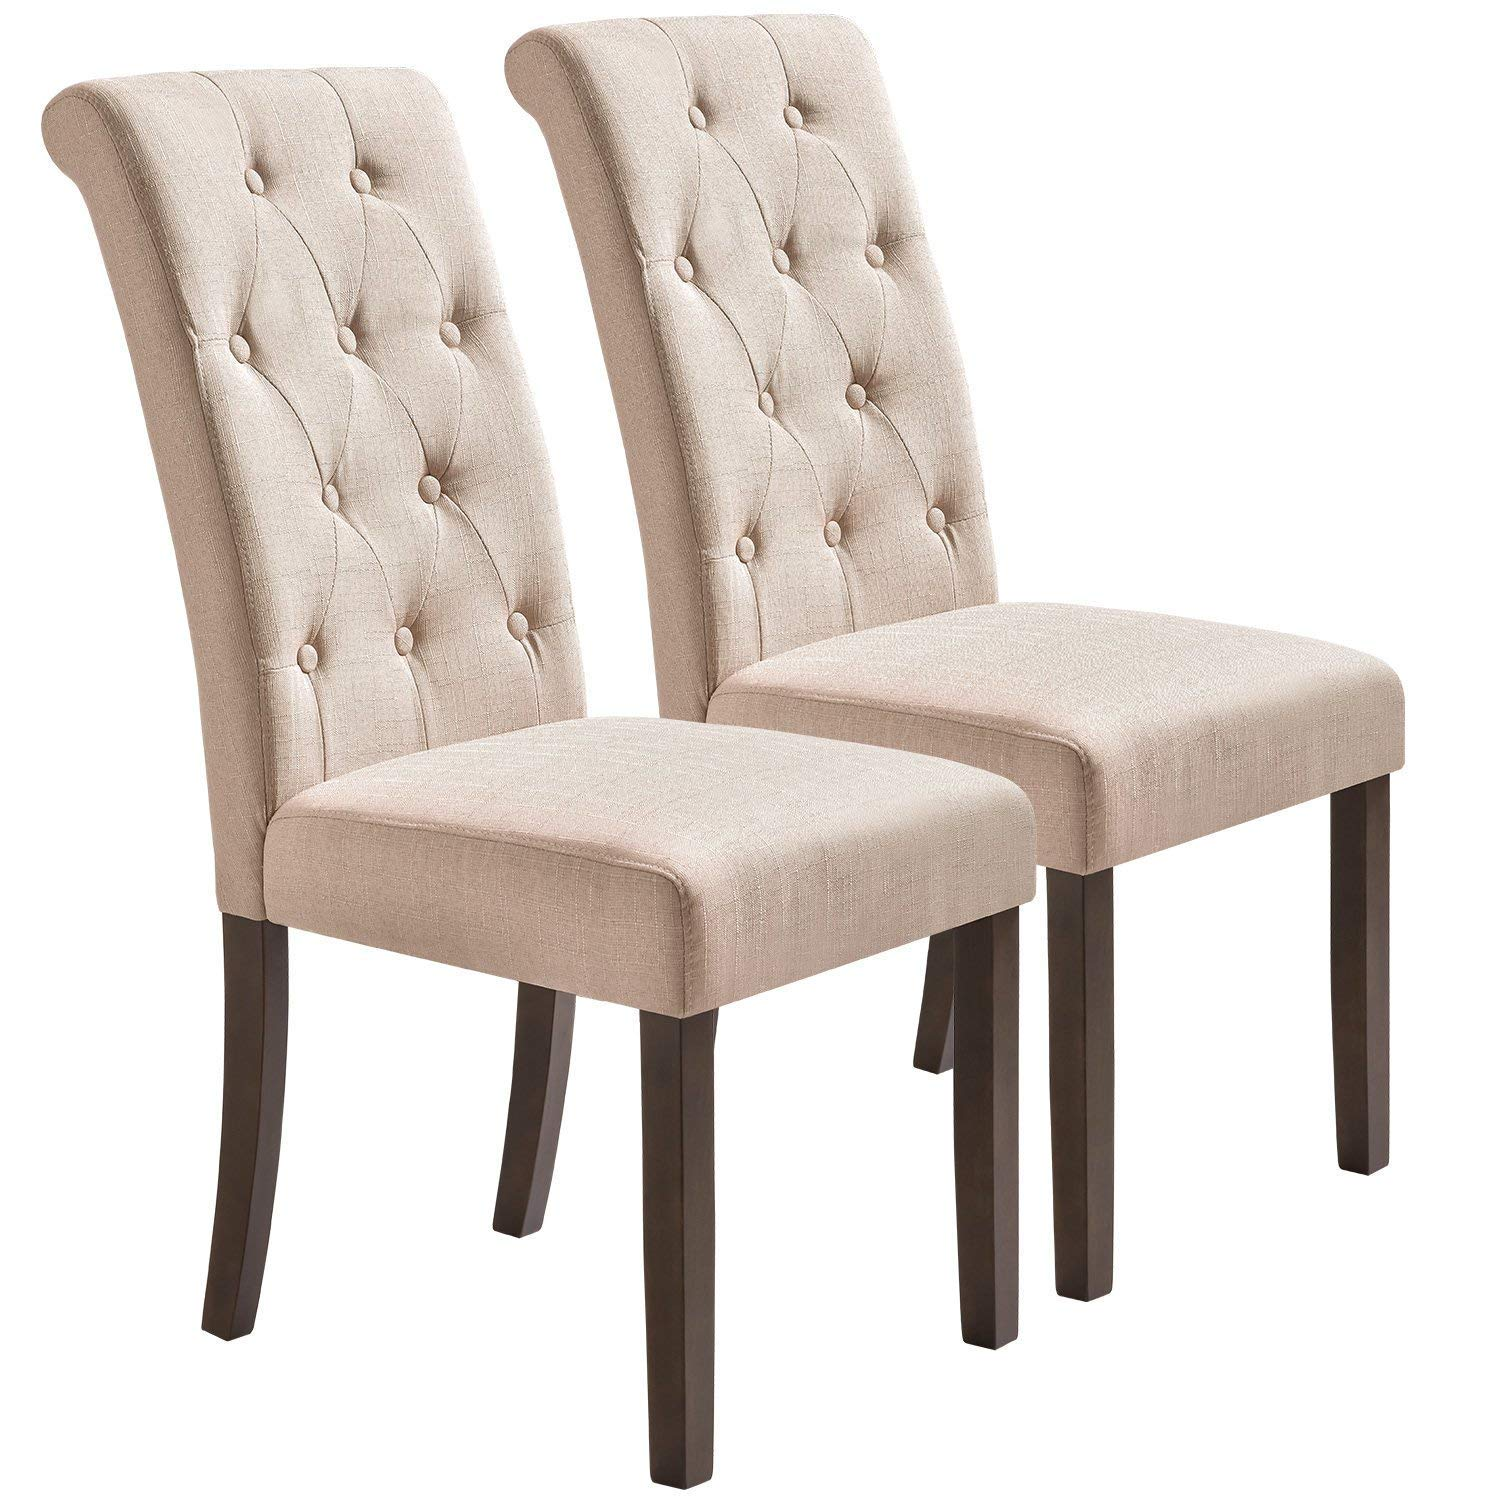 Merax Dining Chairs Set of 2 Stylish Tufted Upholstered Fabric Chair, Armless Accent Dining Room Chairs with Solid Wood Legs (Beige)